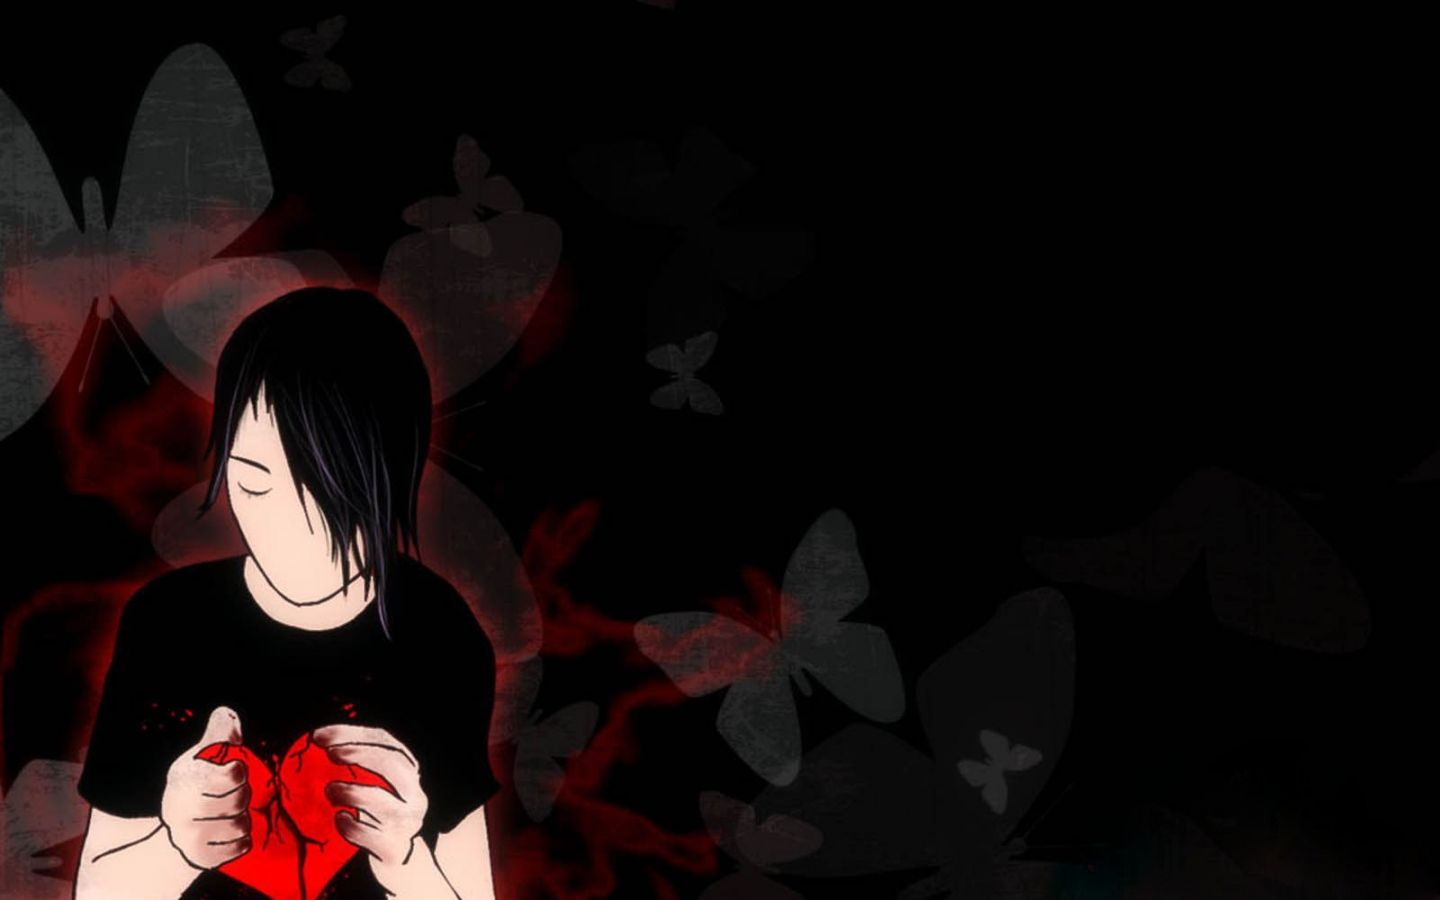 Broken Heart Emo Wallpapers Emo Wallpaper Wallpaper Broken Heart Images